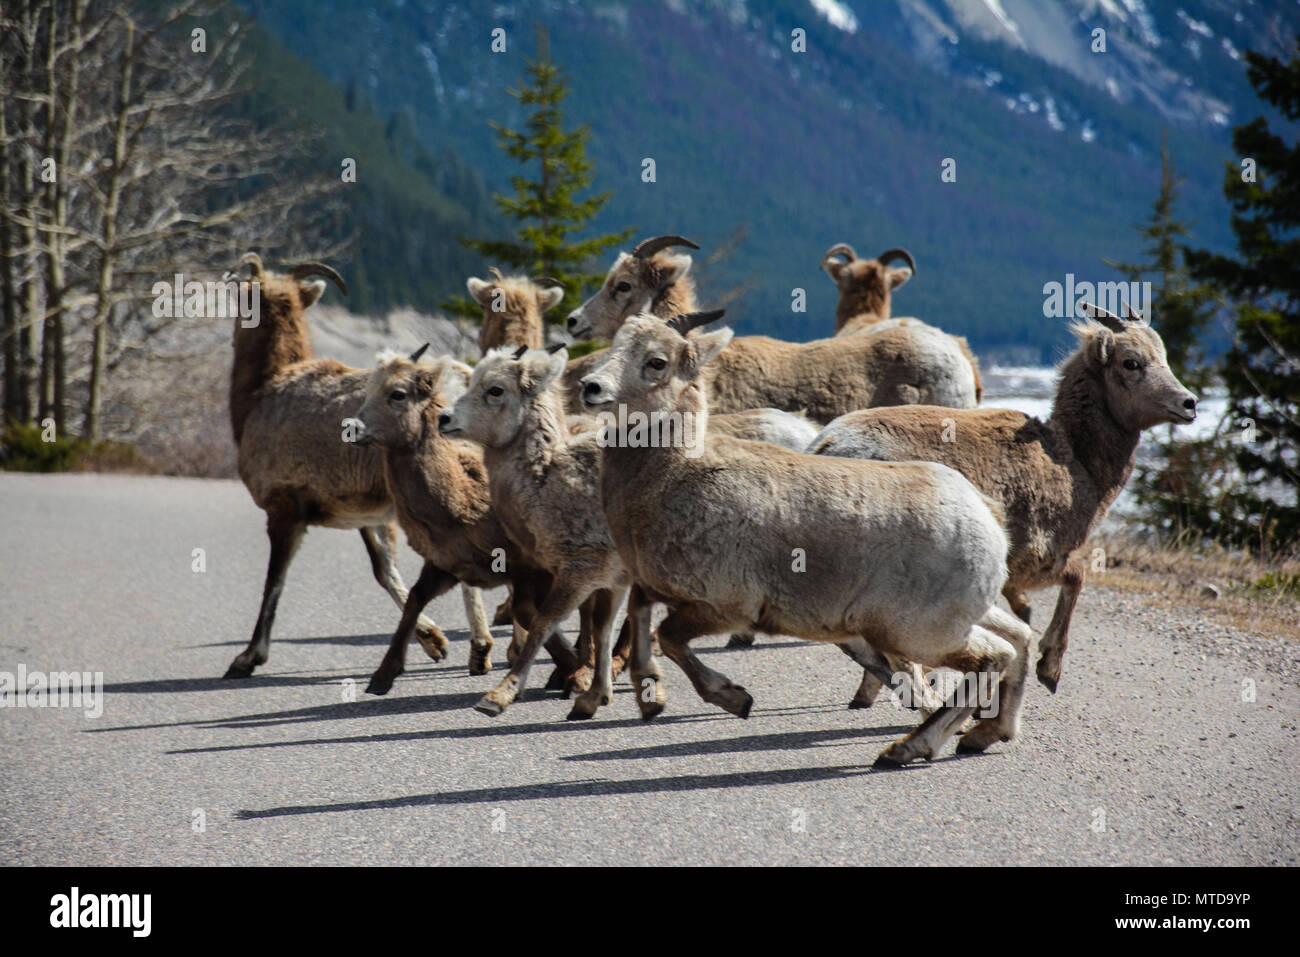 A herd of goats next to a lake in the rocky mountains. - Stock Image